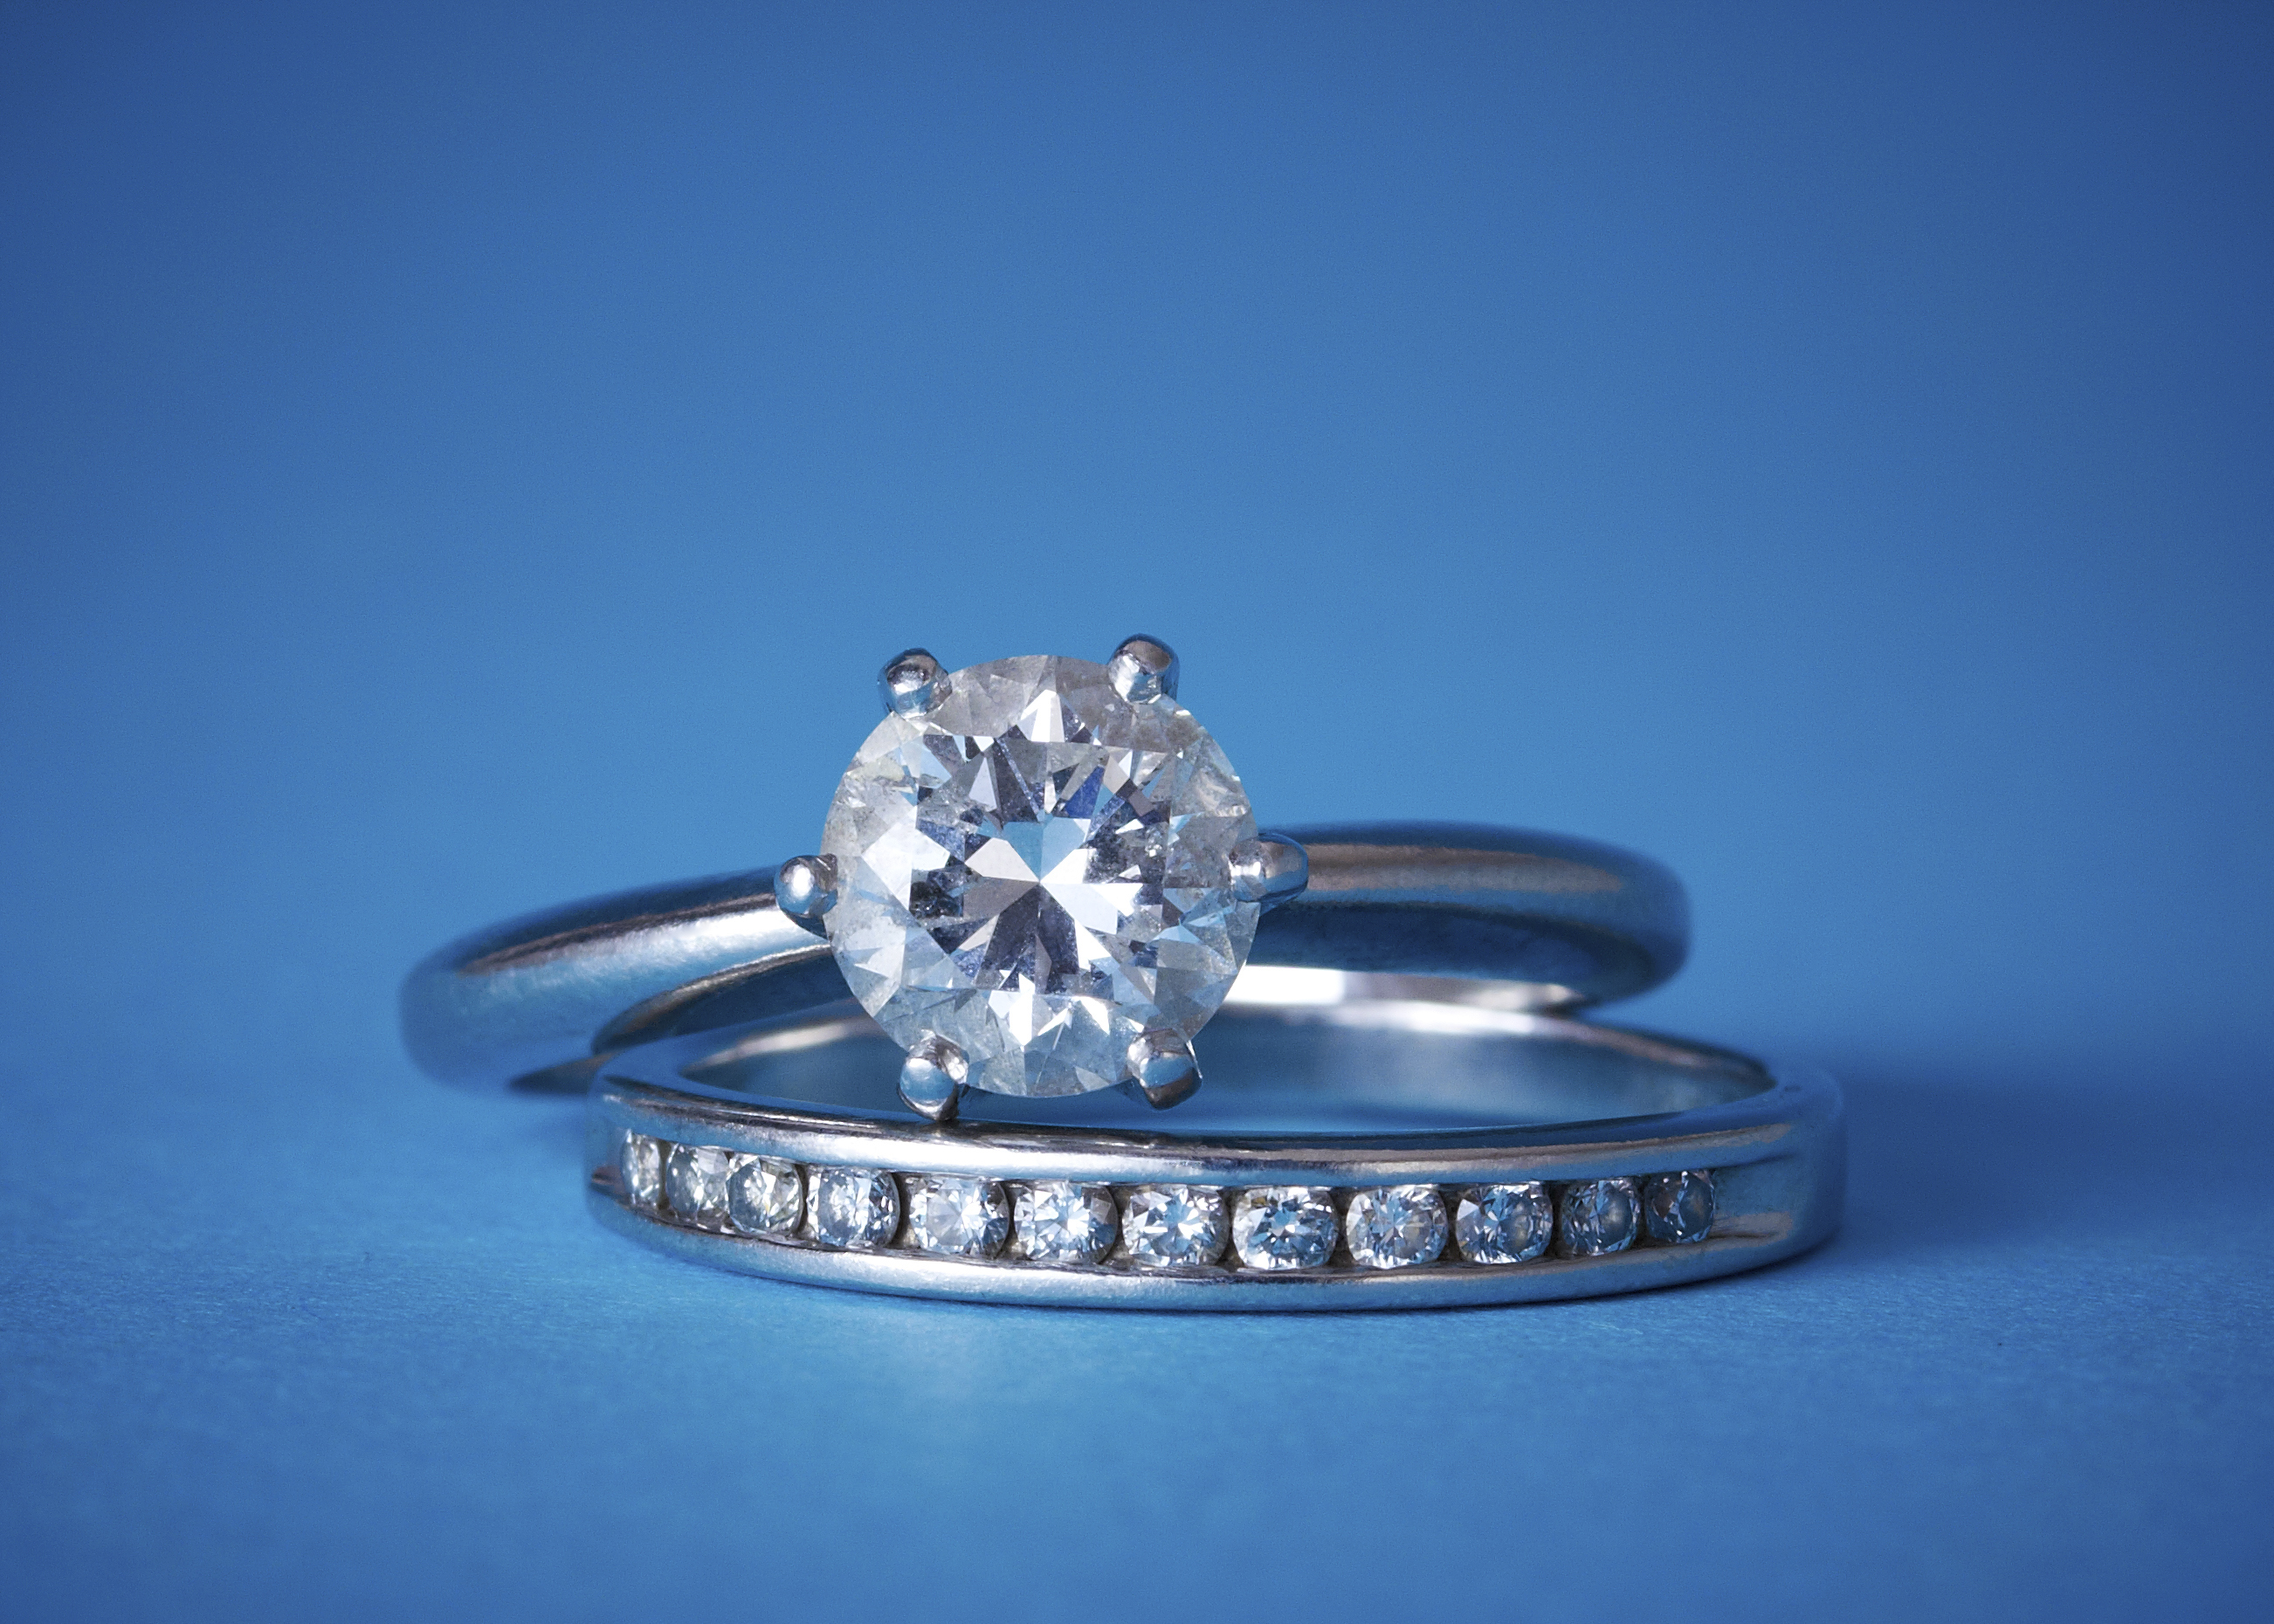 Engagement ring insurance articles easy weddings engagement ring insurance junglespirit Choice Image